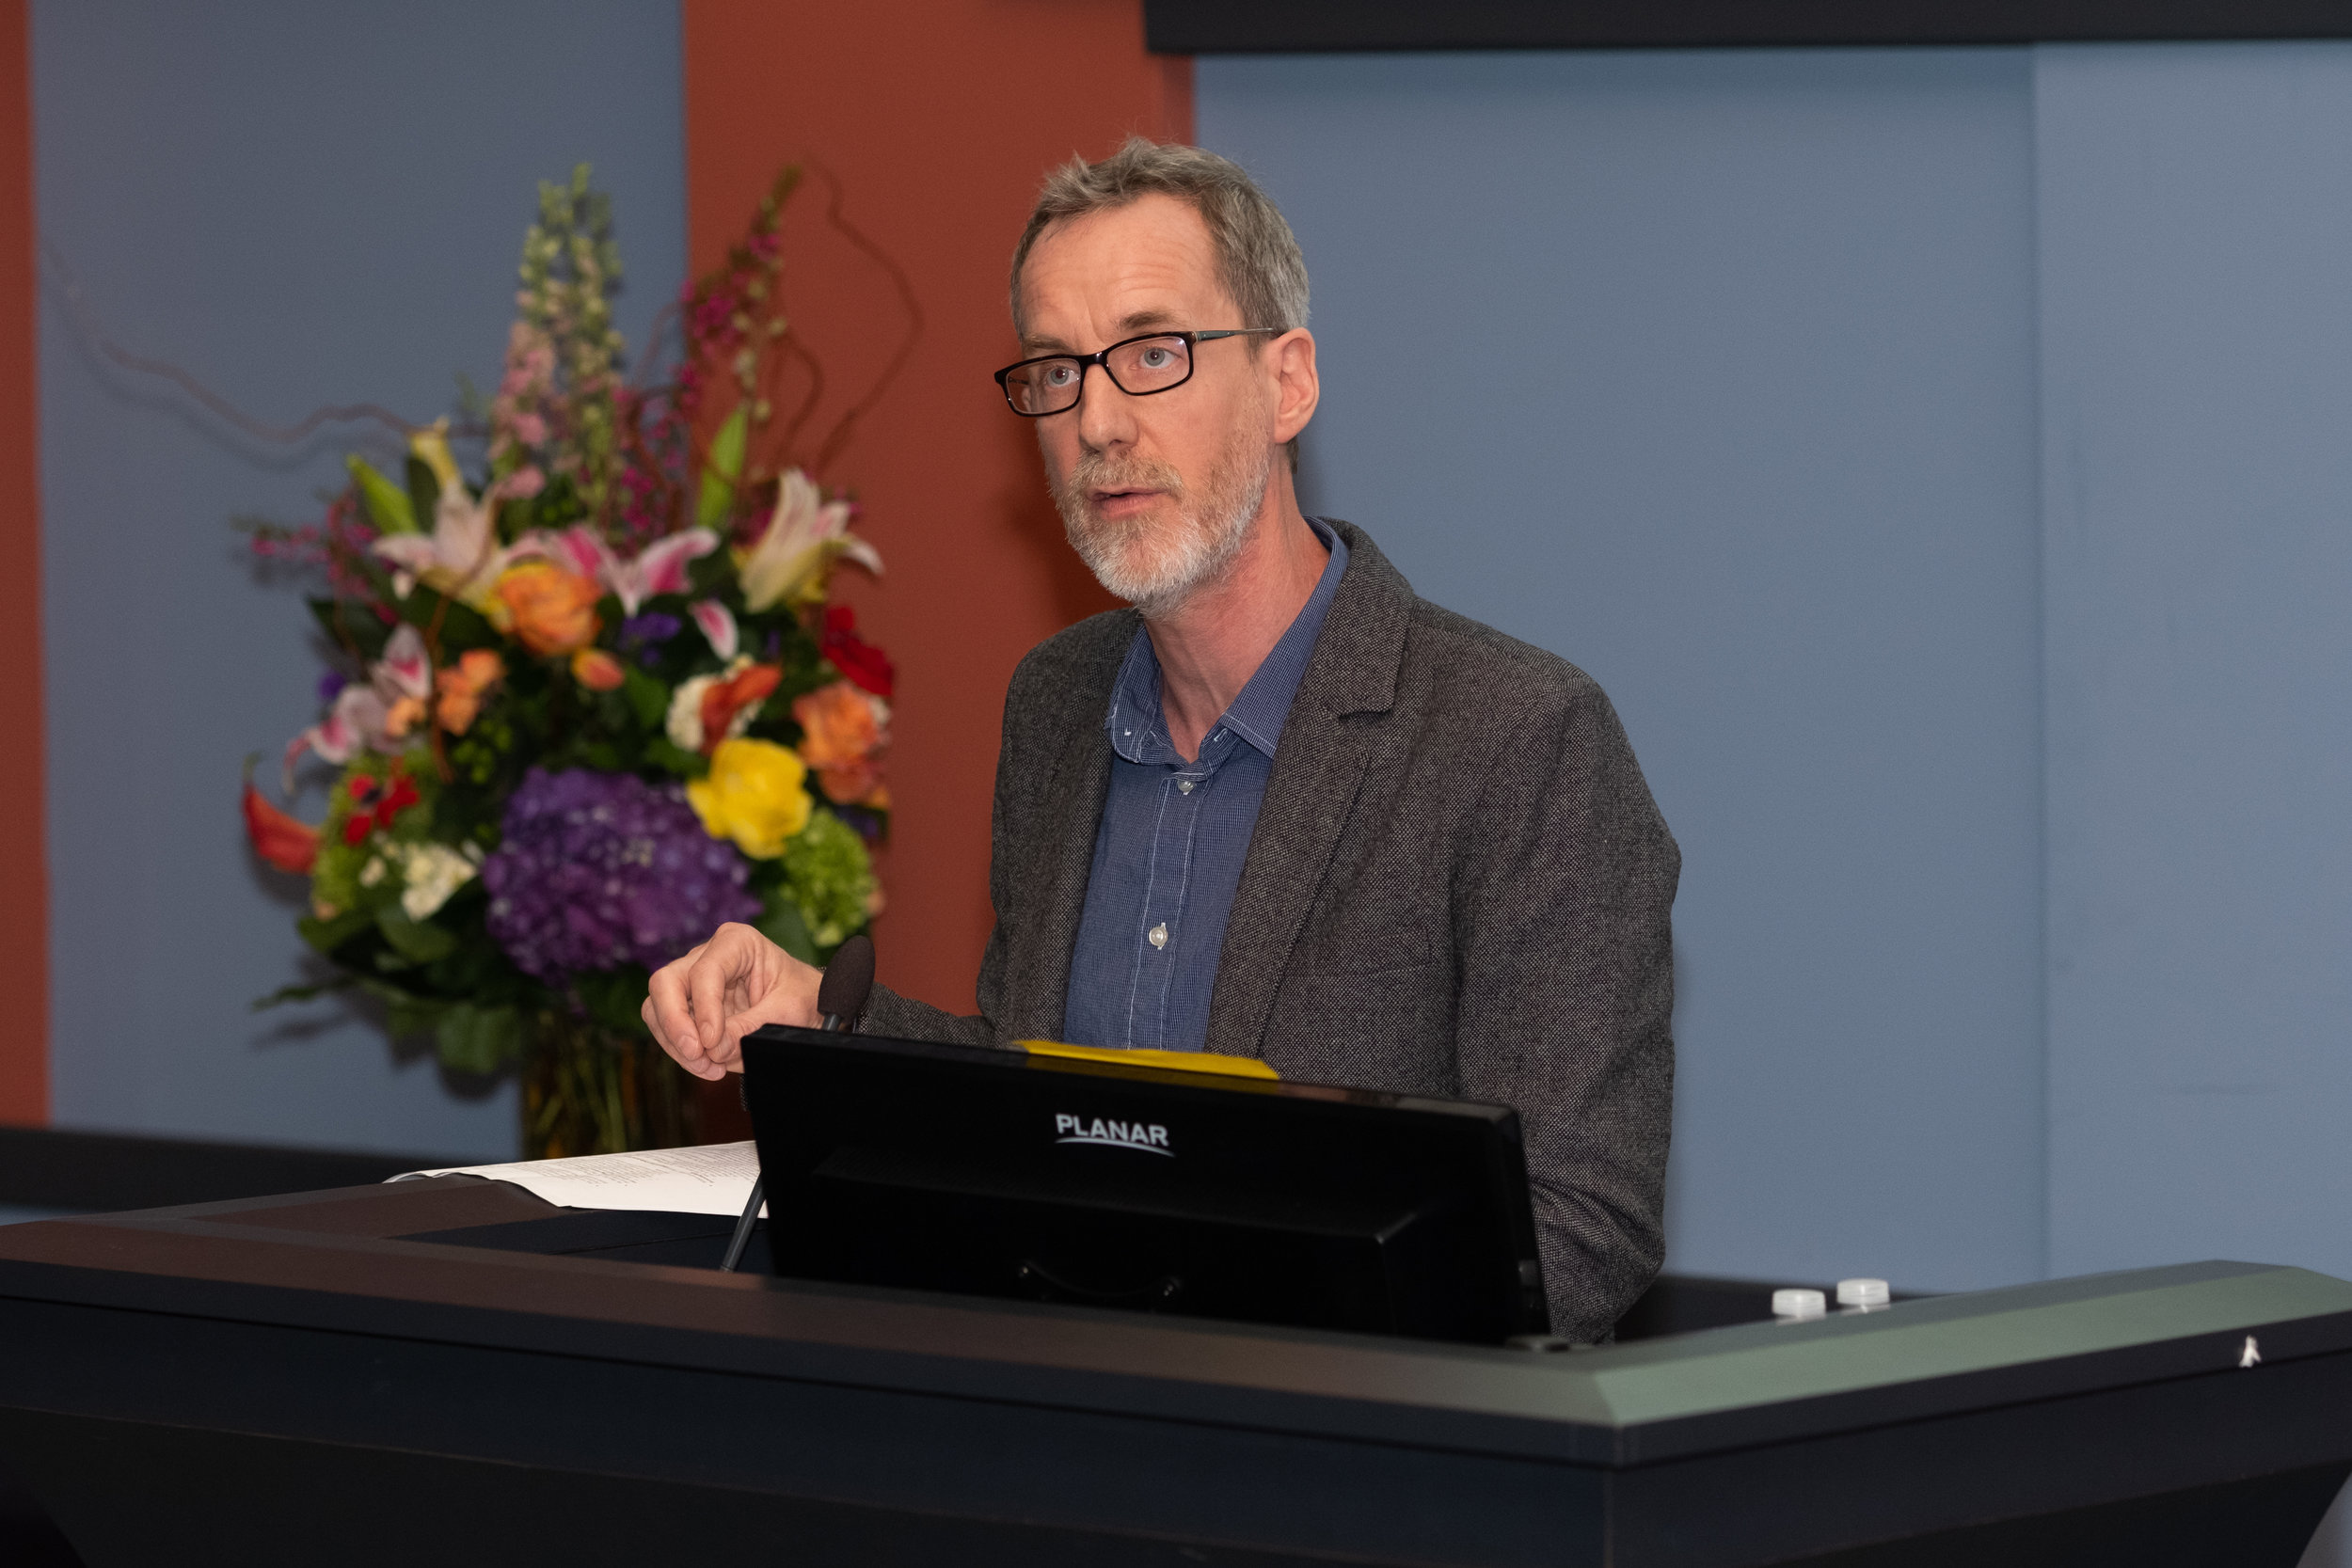 Robert Werth, Senior Lecturer in Sociology and 2018 Recipient of the GRB Prize for Excellence in Teaching